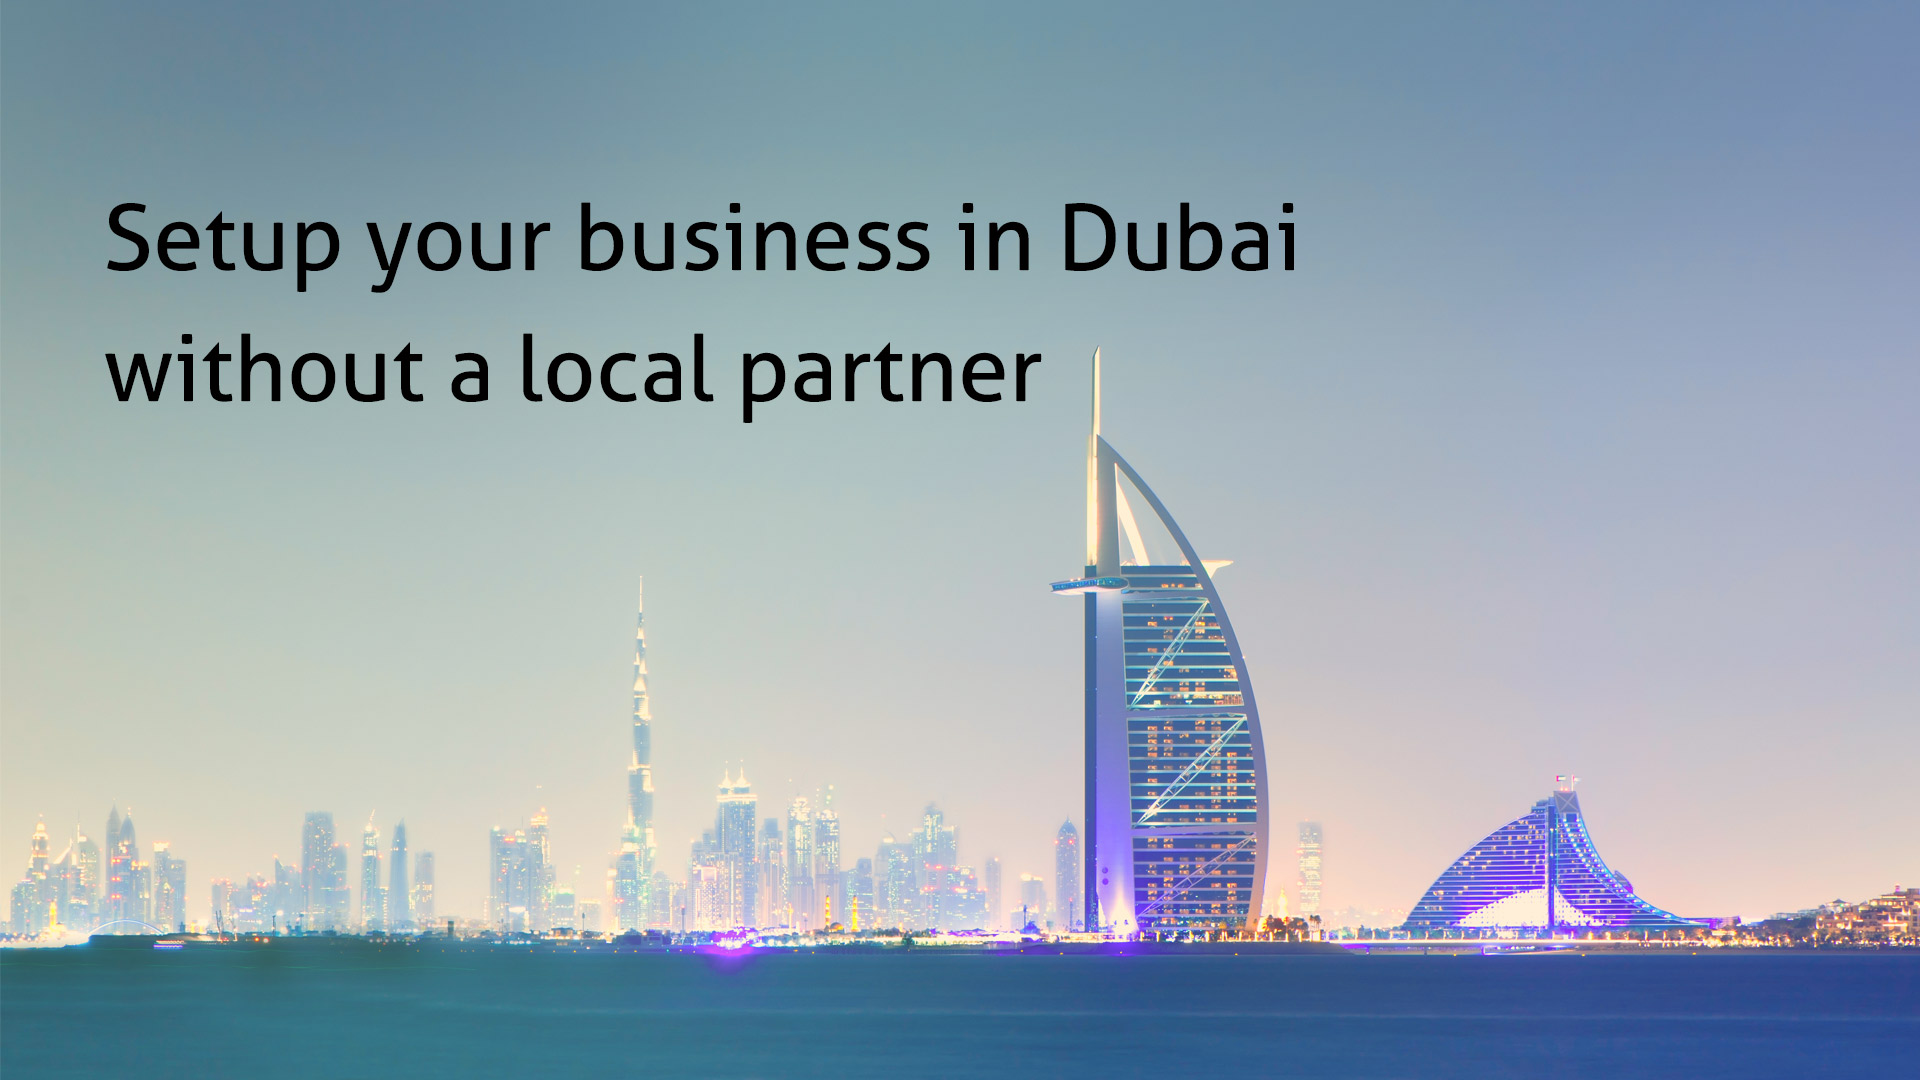 Setup your business in Dubai without a local partner